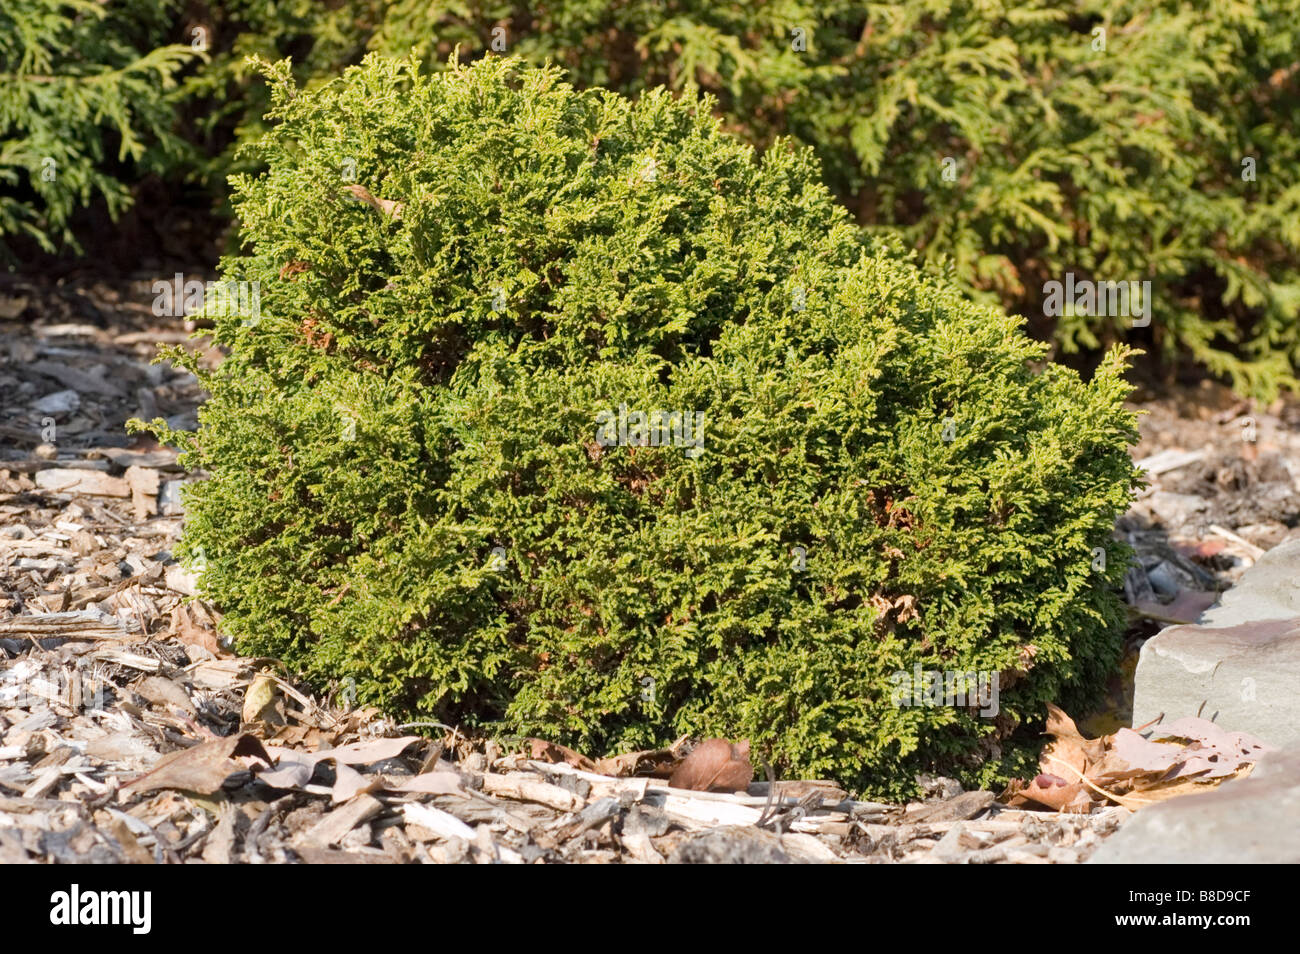 Dwarf Sawara False Cypress, Chamaecyparis Pisifera Tsukomo, Cupressaceae Family - Stock Image